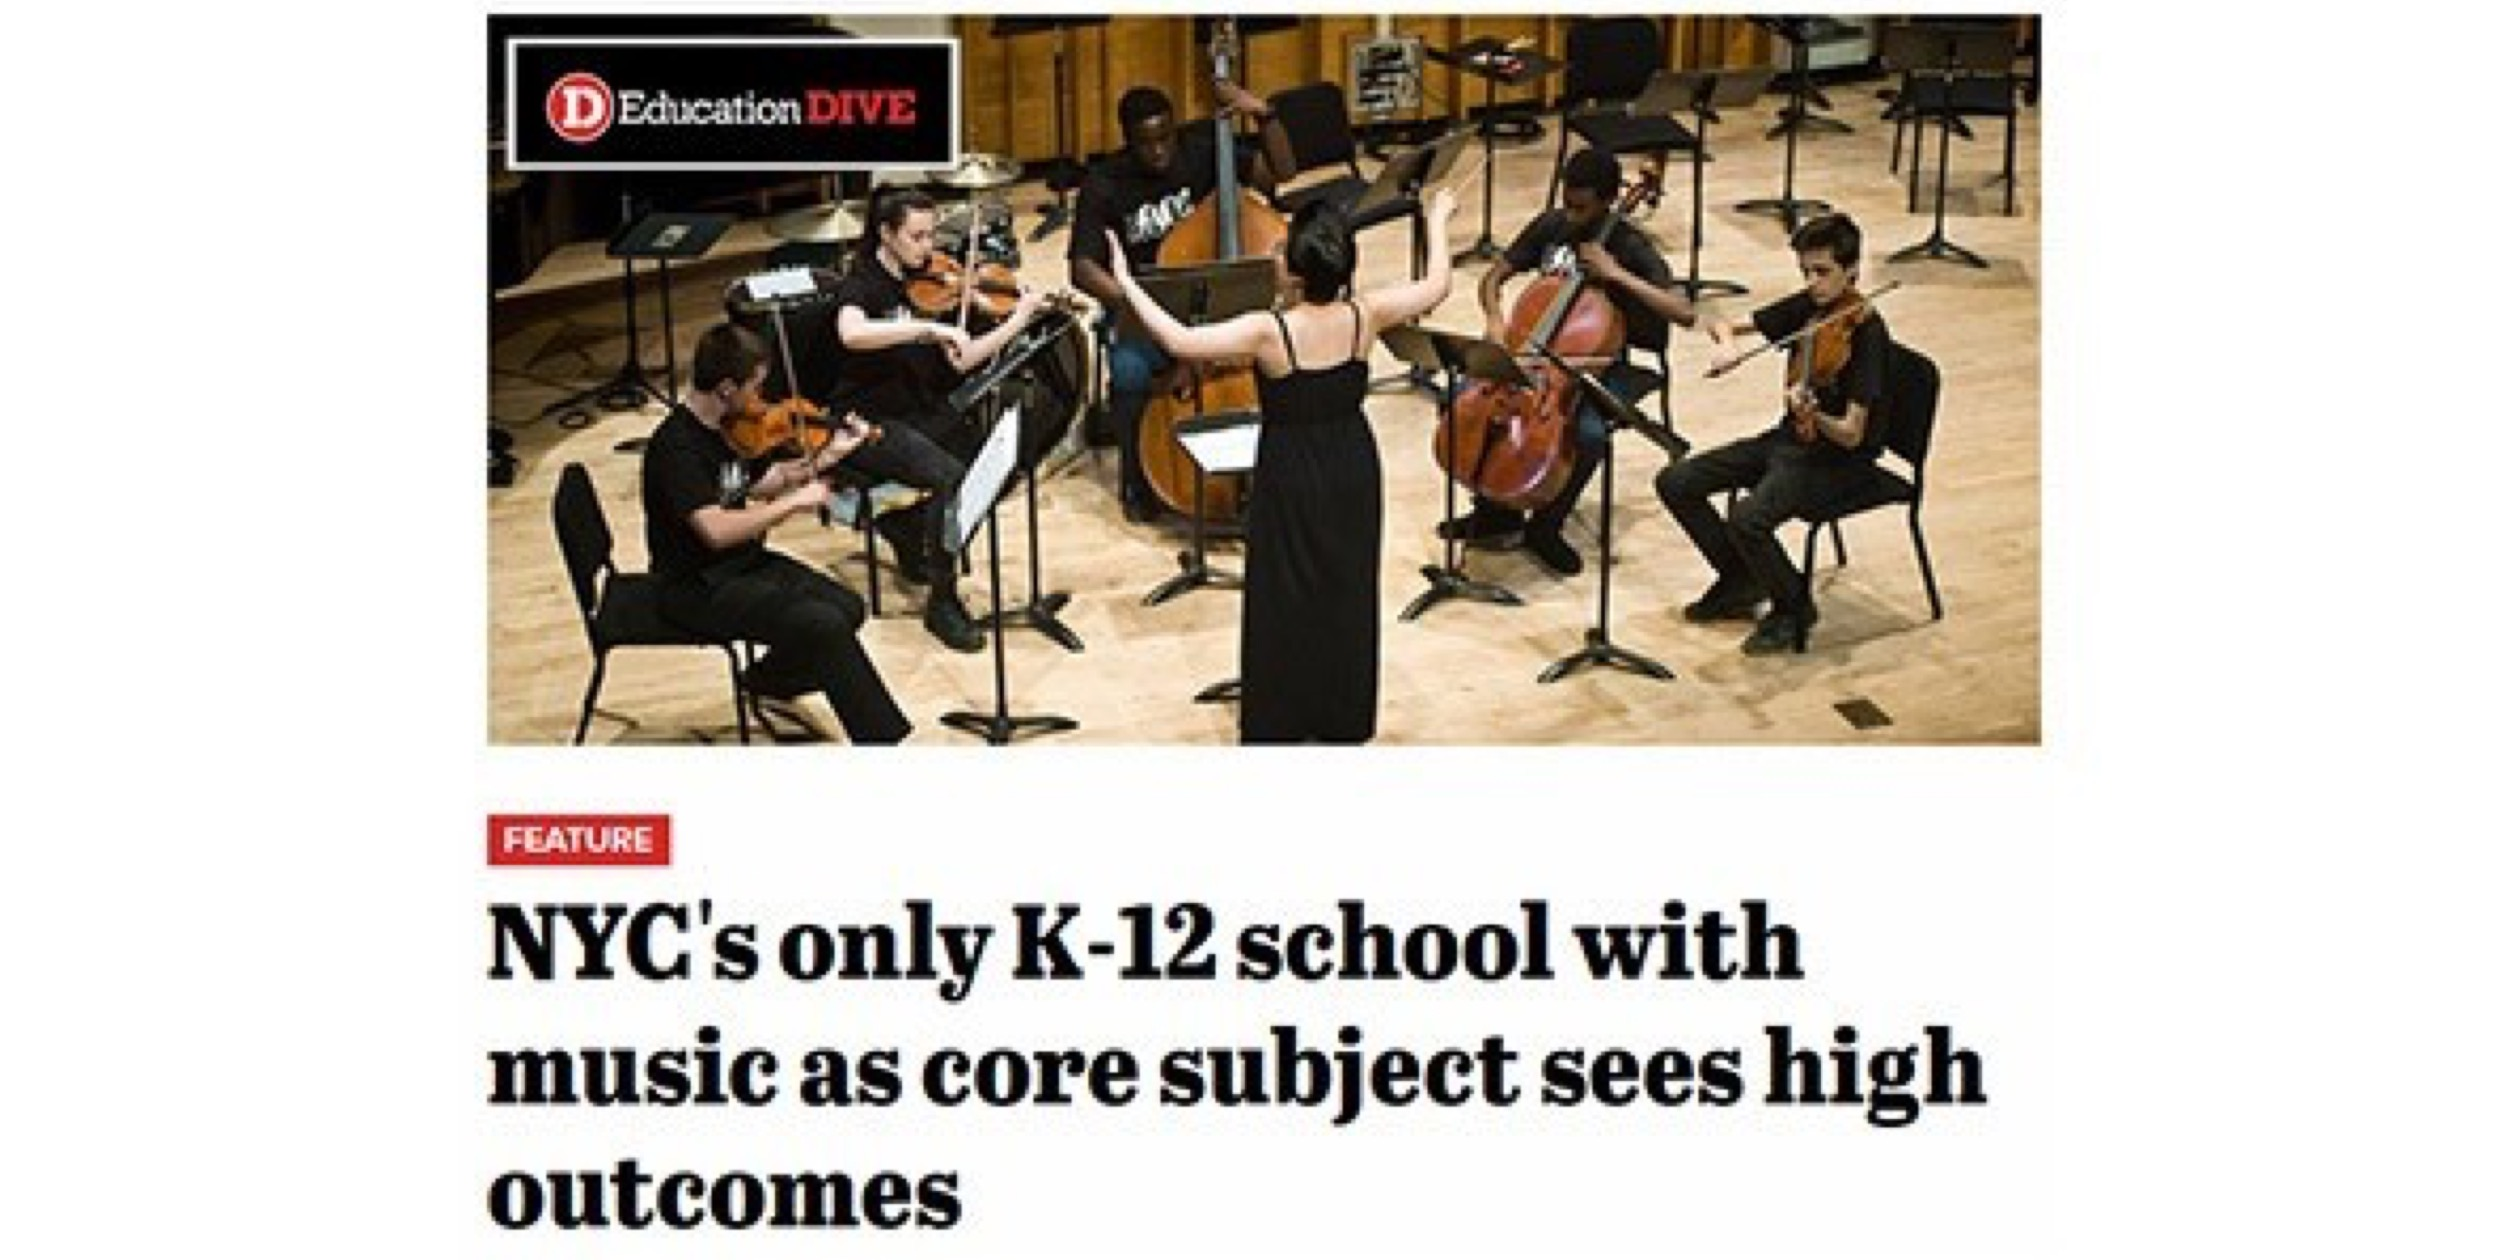 Special Music School in the News